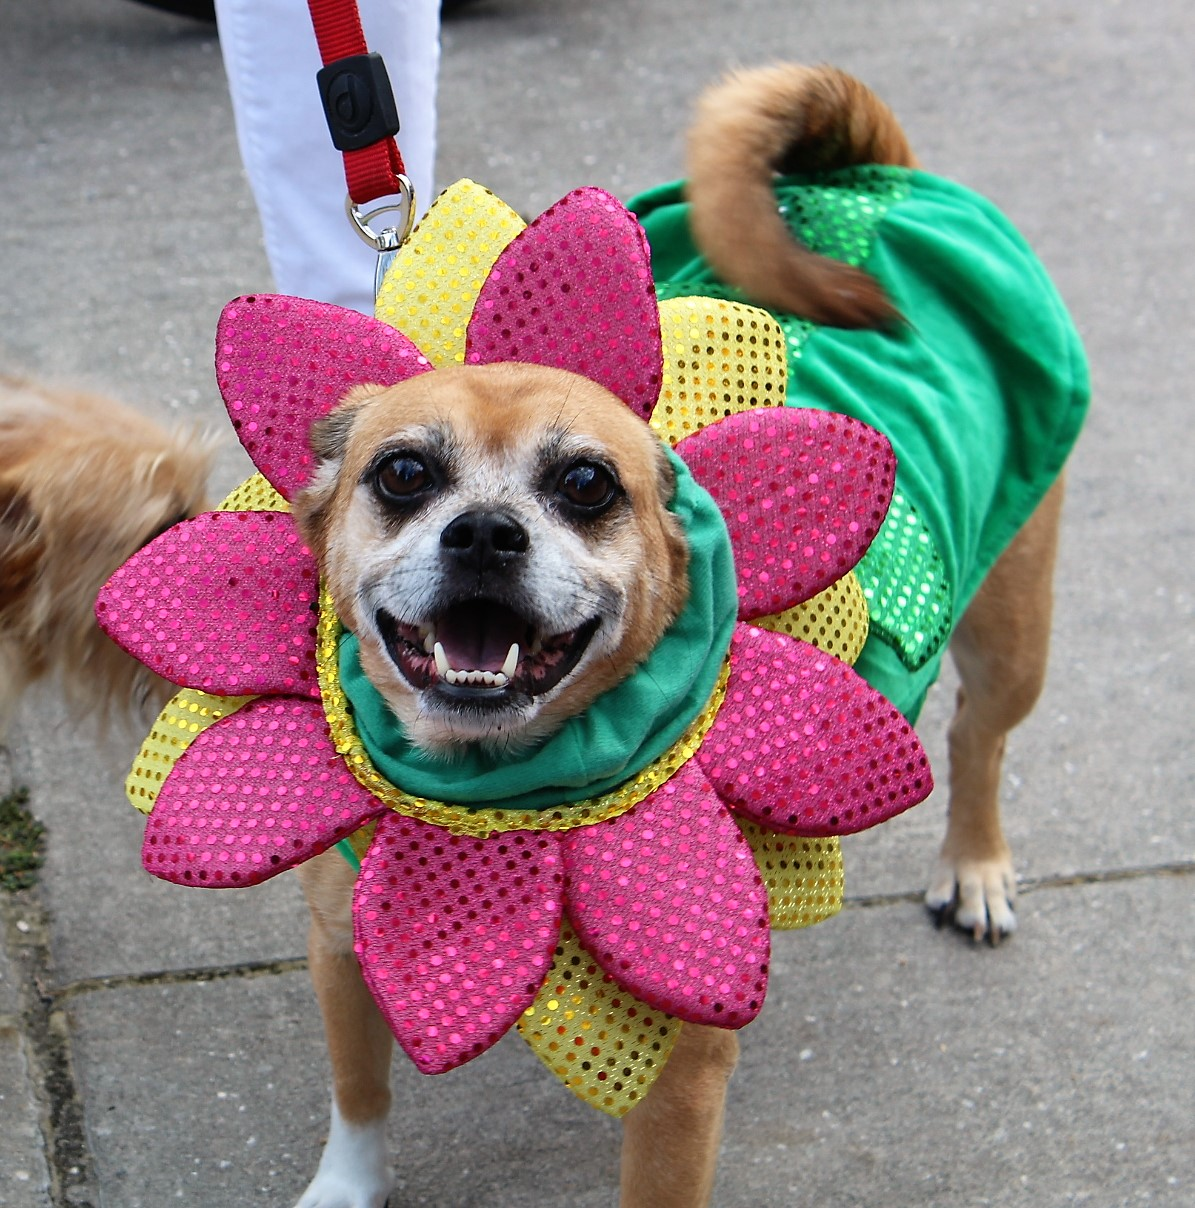 A dog in a flower costume in pink yellow and green